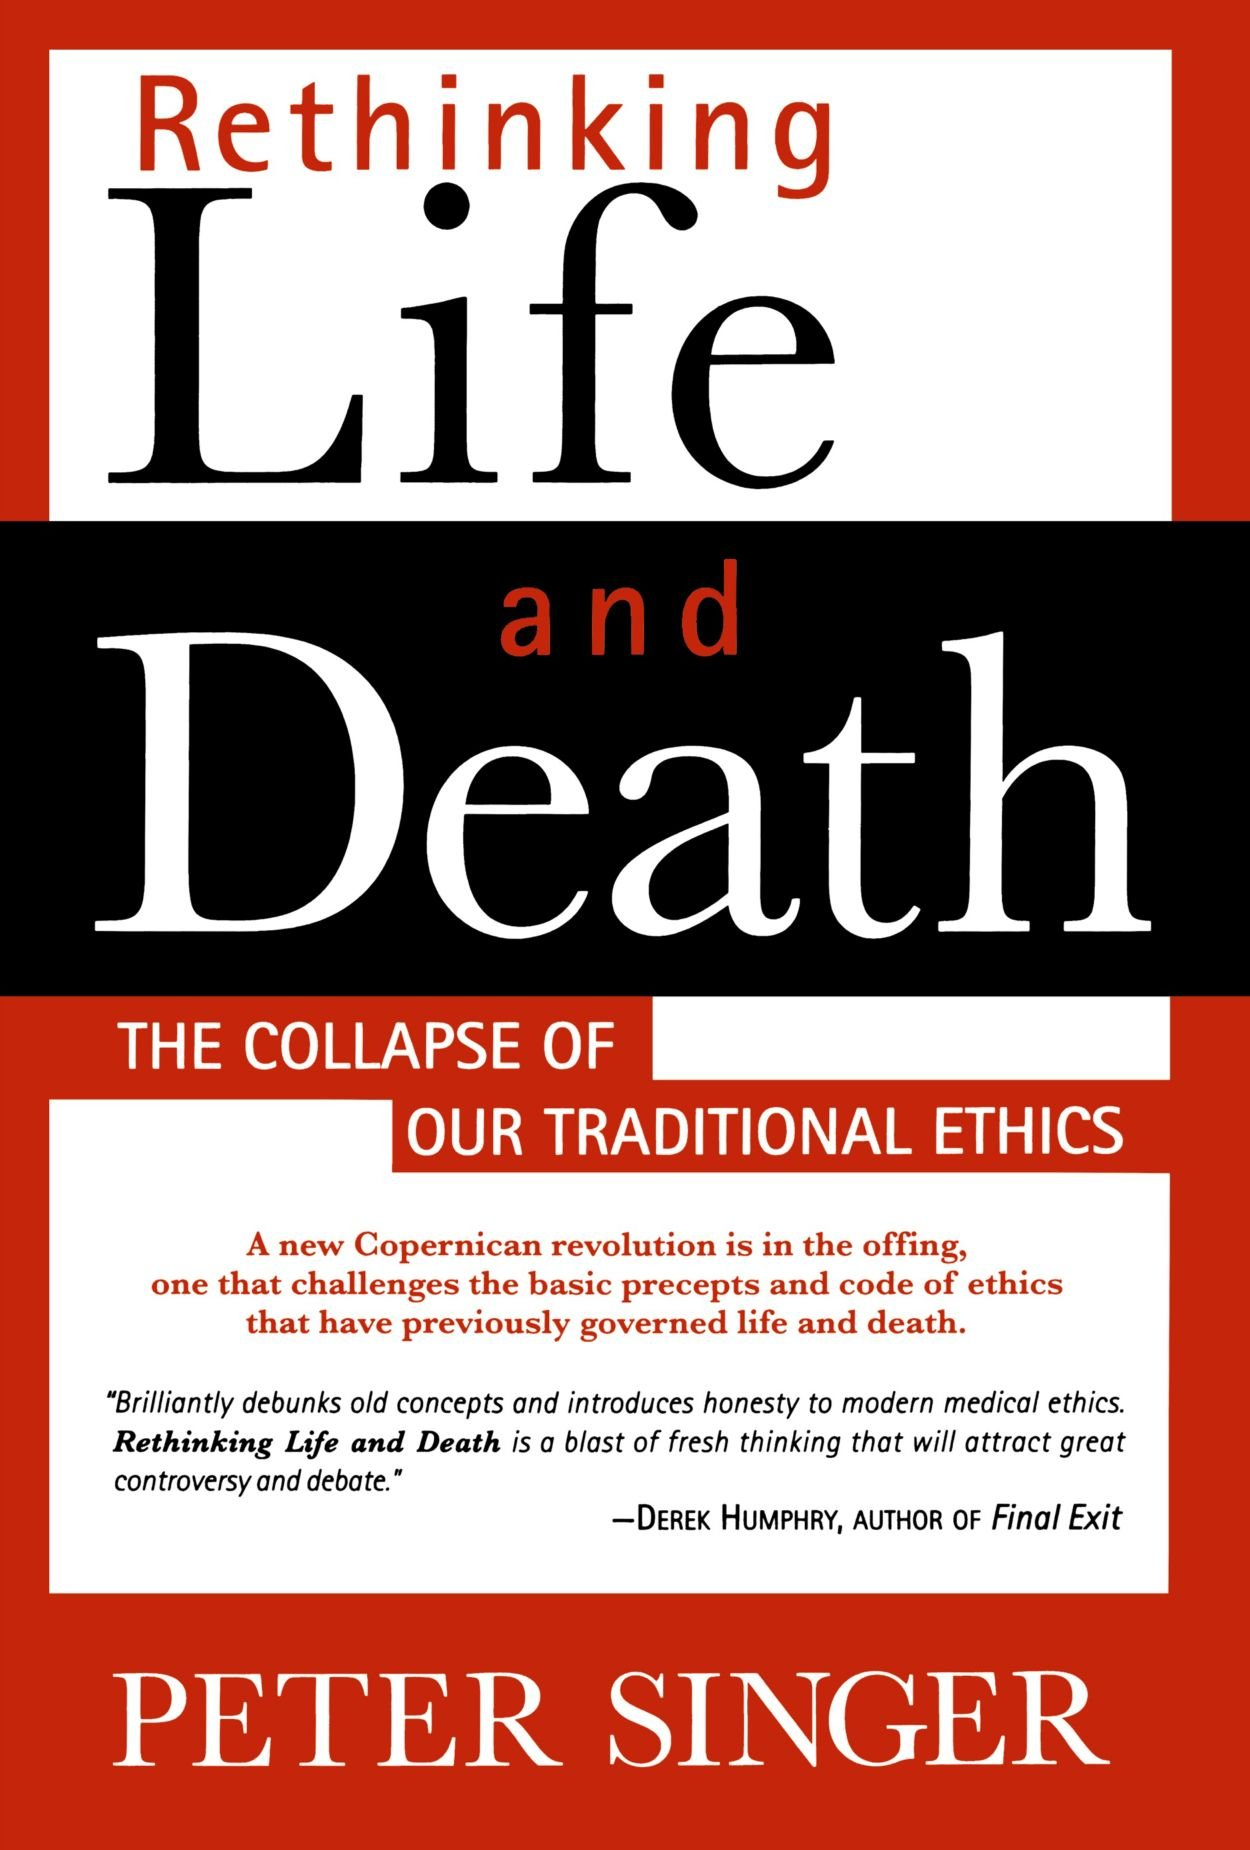 """rethinking ethics 2 george bragues, """"seek the good life, not money: the aristotelian approach to business ethics,"""" journal of business ethics 67 (2006): 341-57 3 lee d ross and richard e nisbett, the person and the situation: perspectives in social psychology (new york, ny: mcgraw-hill, 1991)."""